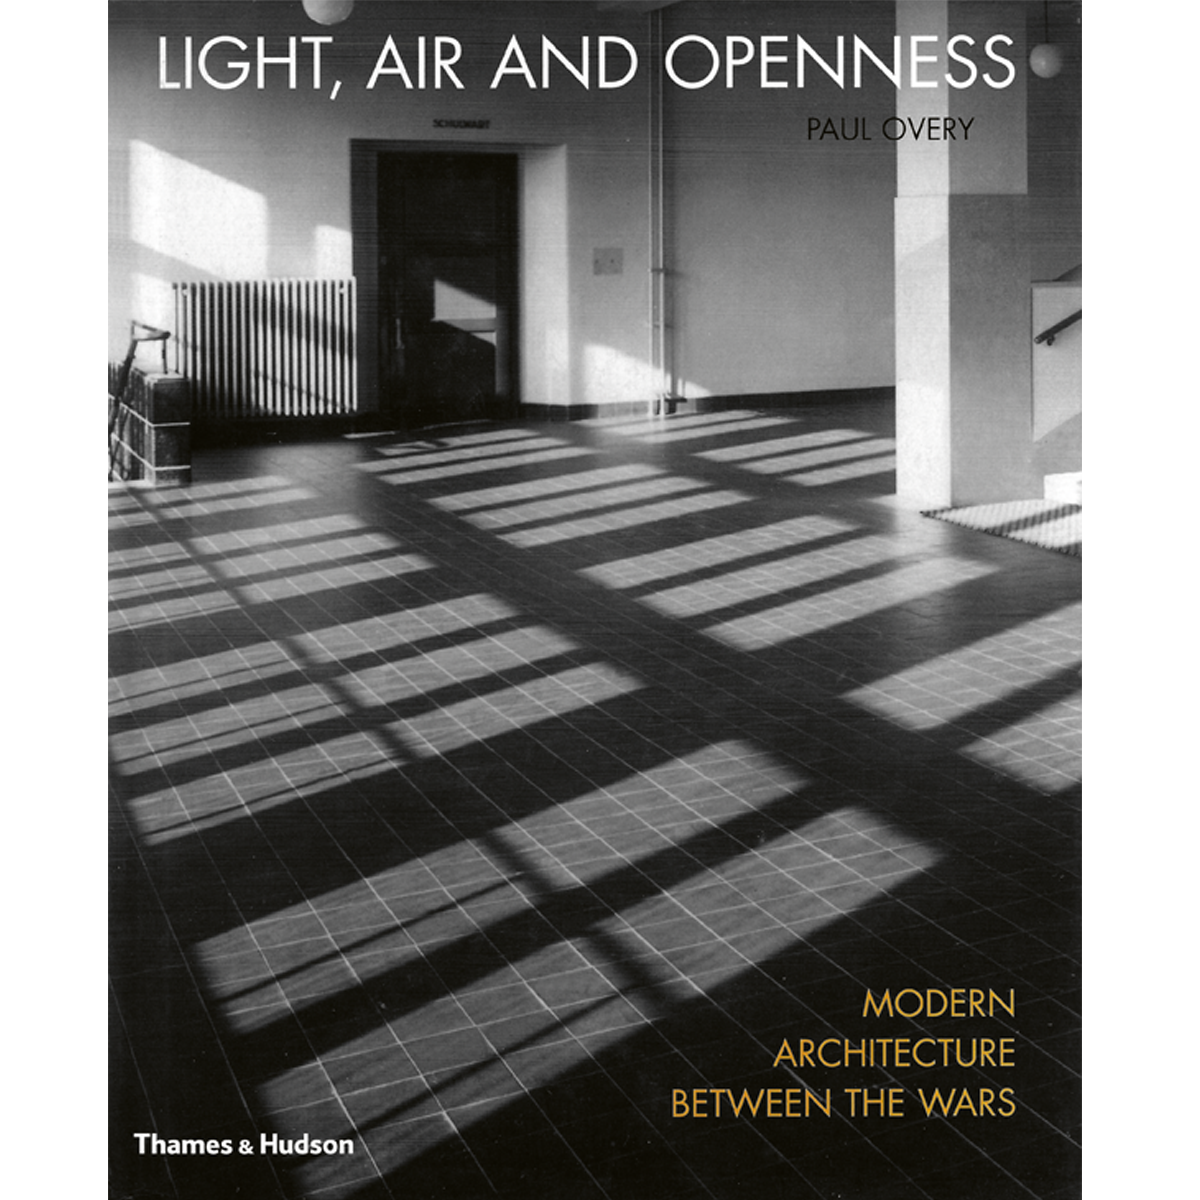 Light, Air and Openness